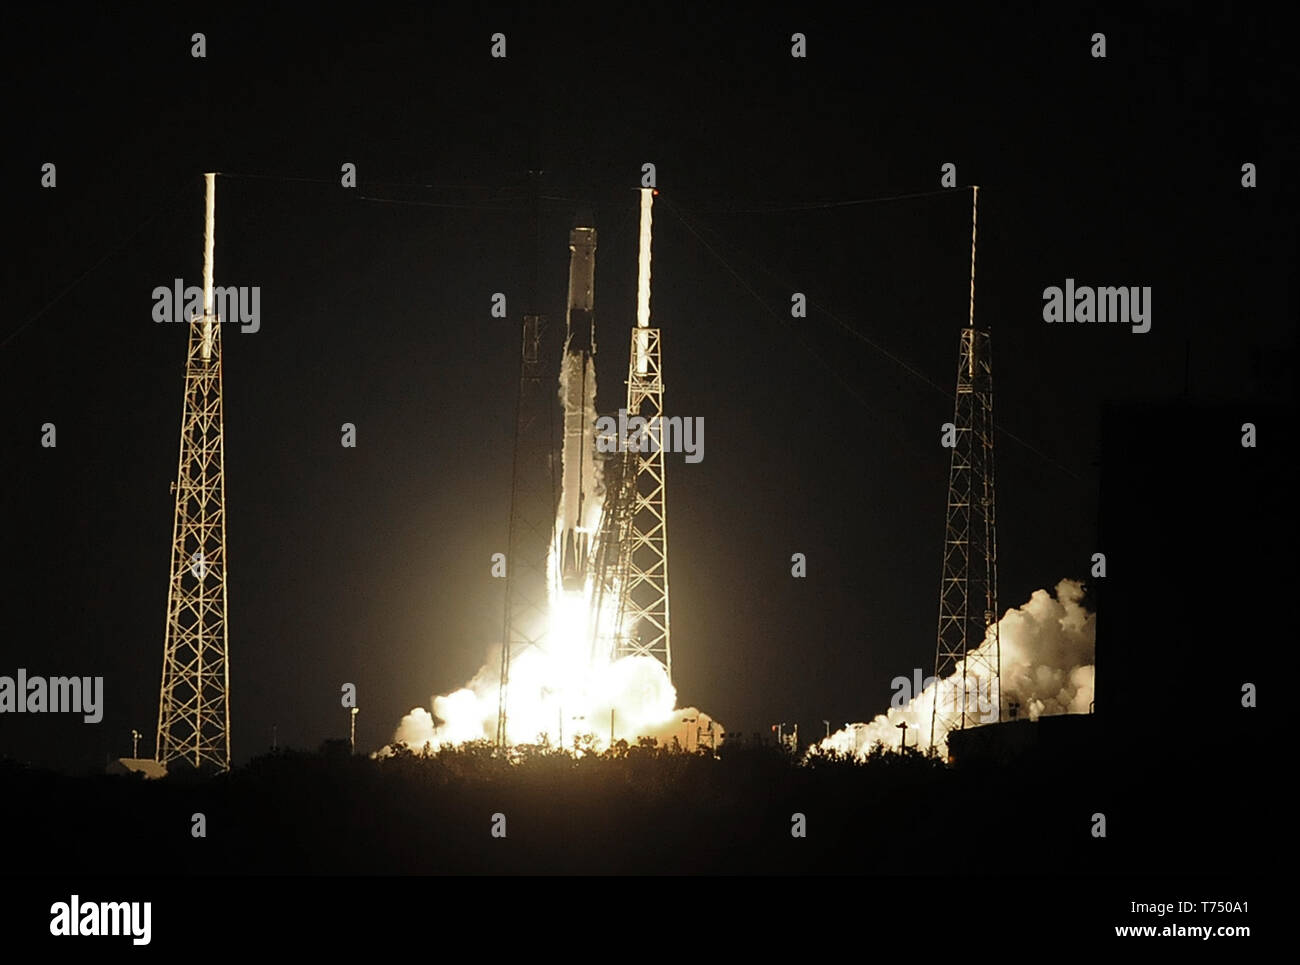 Cape Canaveral, United States. 04th May, 2019. May 4, 2019 - Cape Canaveral, Florida, United States - A SpaceX Falcon 9 rocket successfully launches the CRS-17 cargo mission from Cape Canaveral Air Force Station on May 4, 2019 in Cape Canaveral, Florida. This is the 17th resupply mission by SpaceX for NASA to the International Space Station. Credit: Paul Hennessy/Alamy Live News - Stock Image